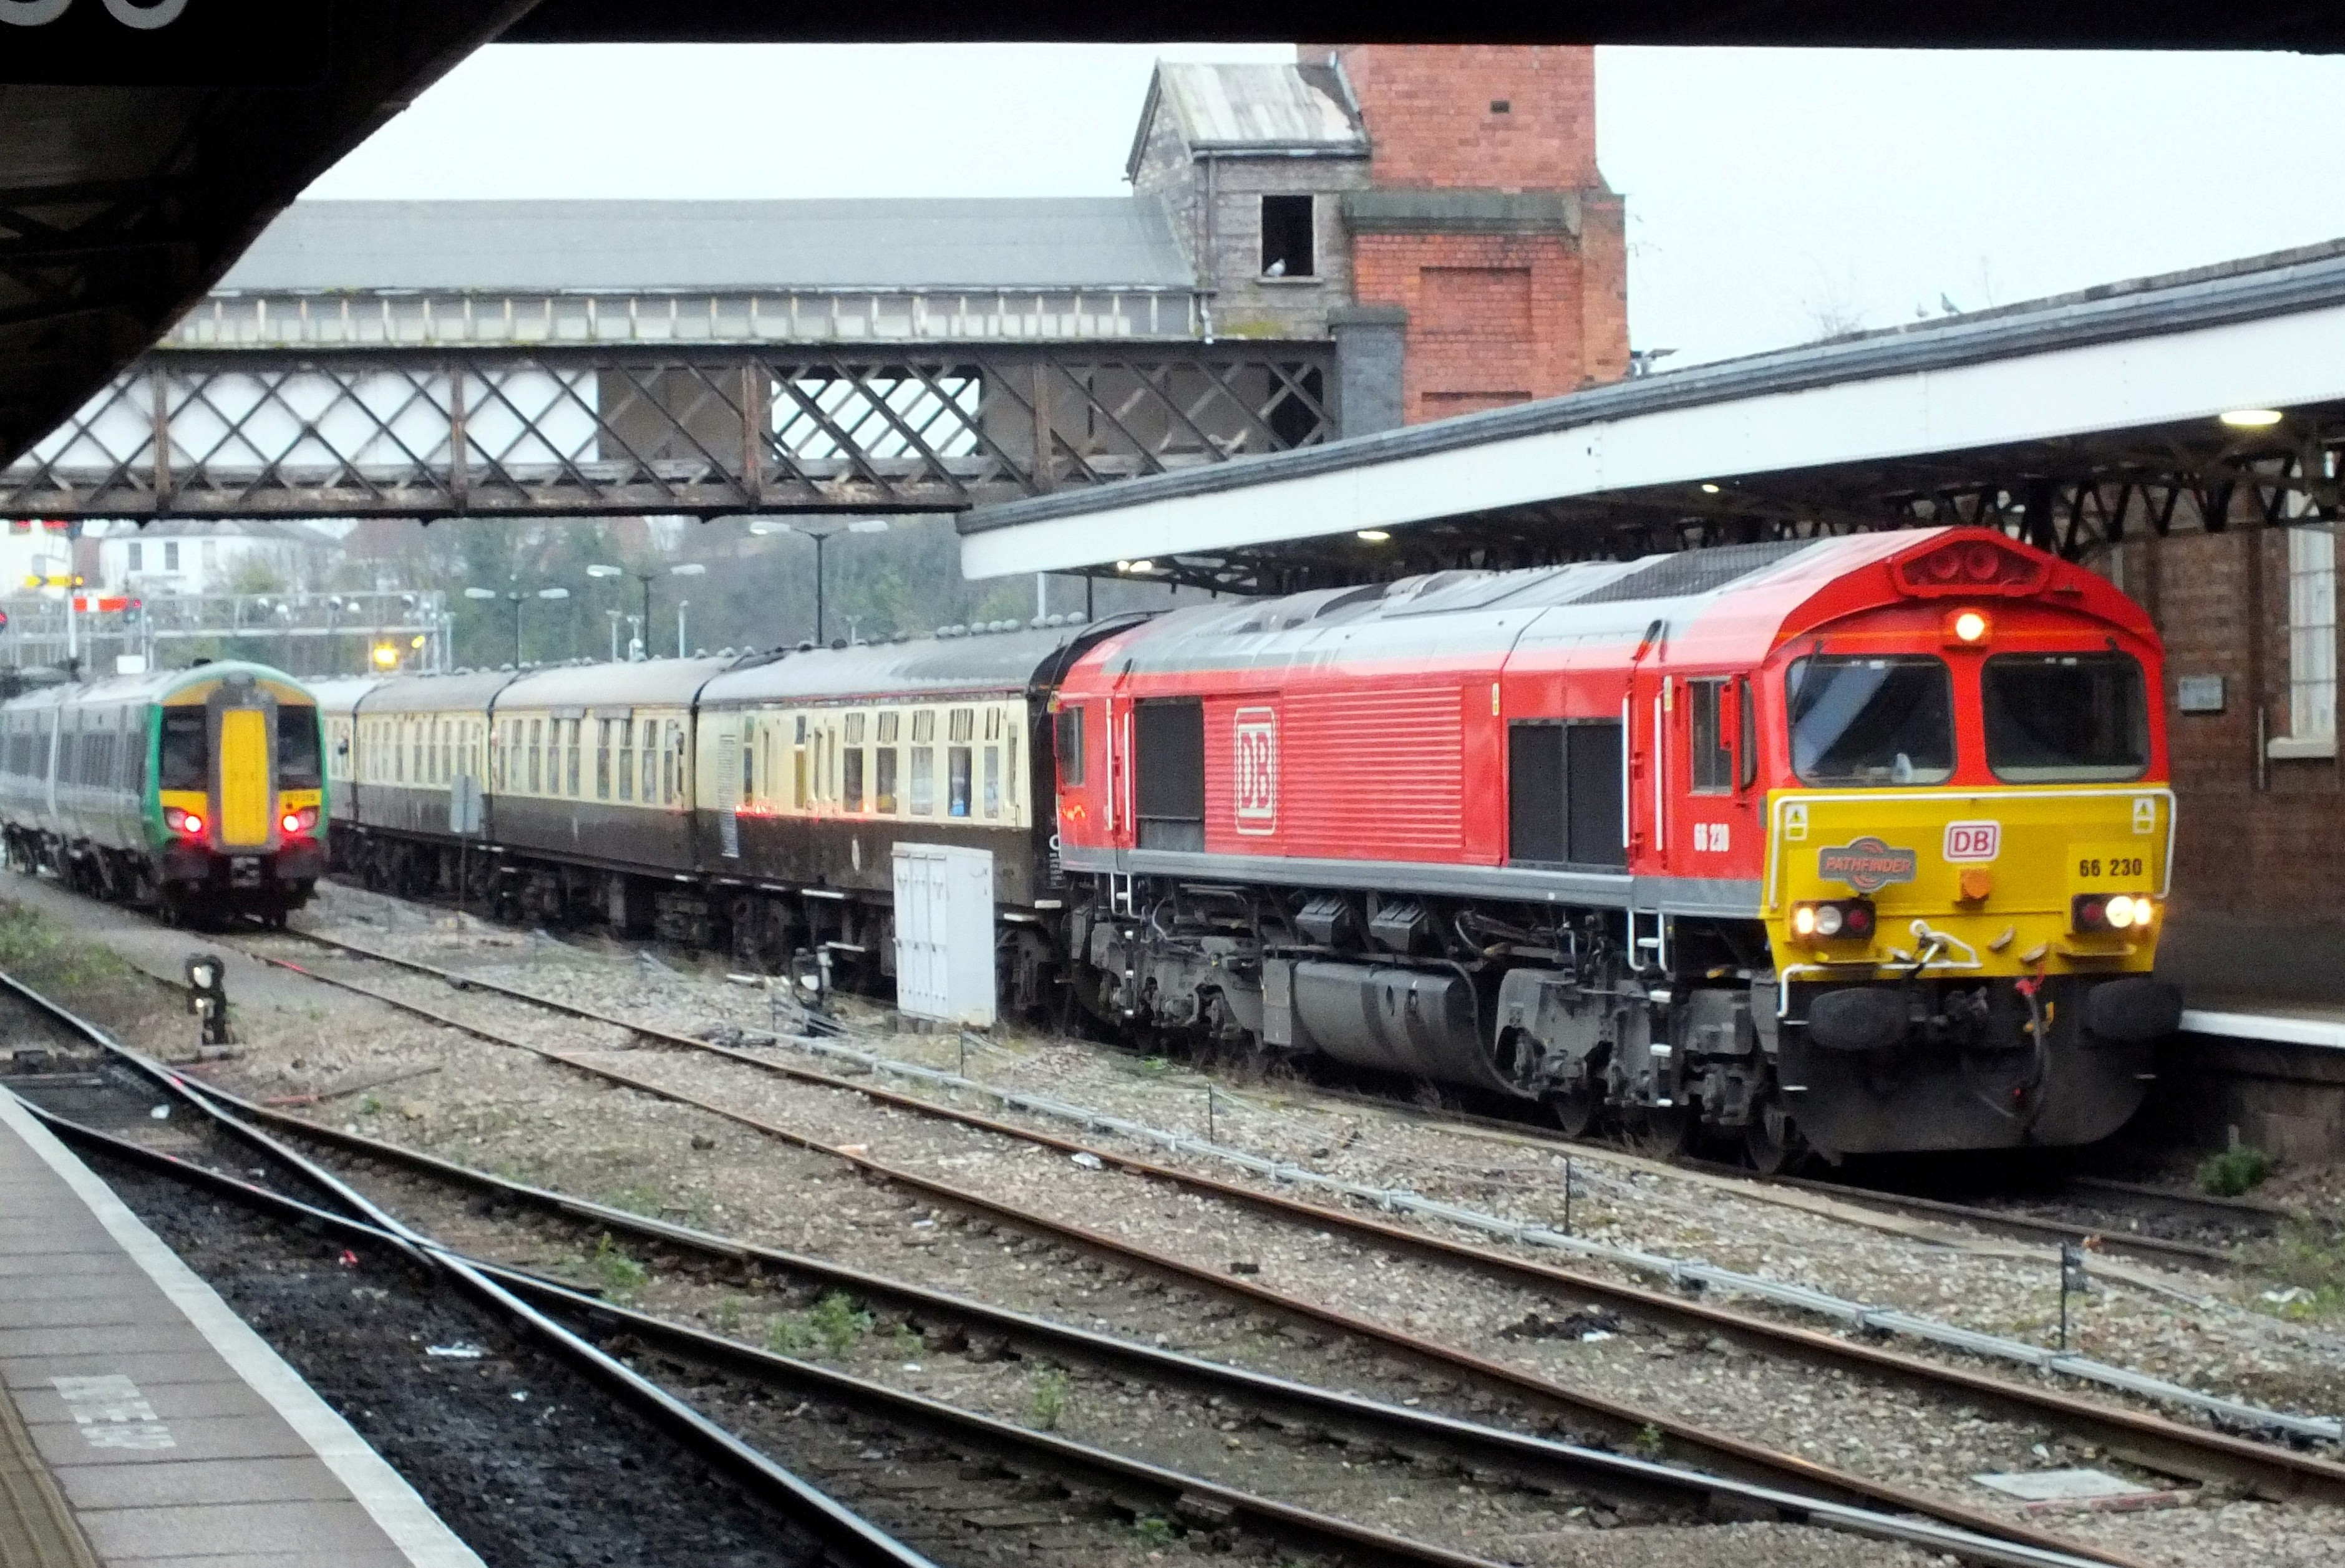 13 January 2018 Shrub Hill 002.jpg